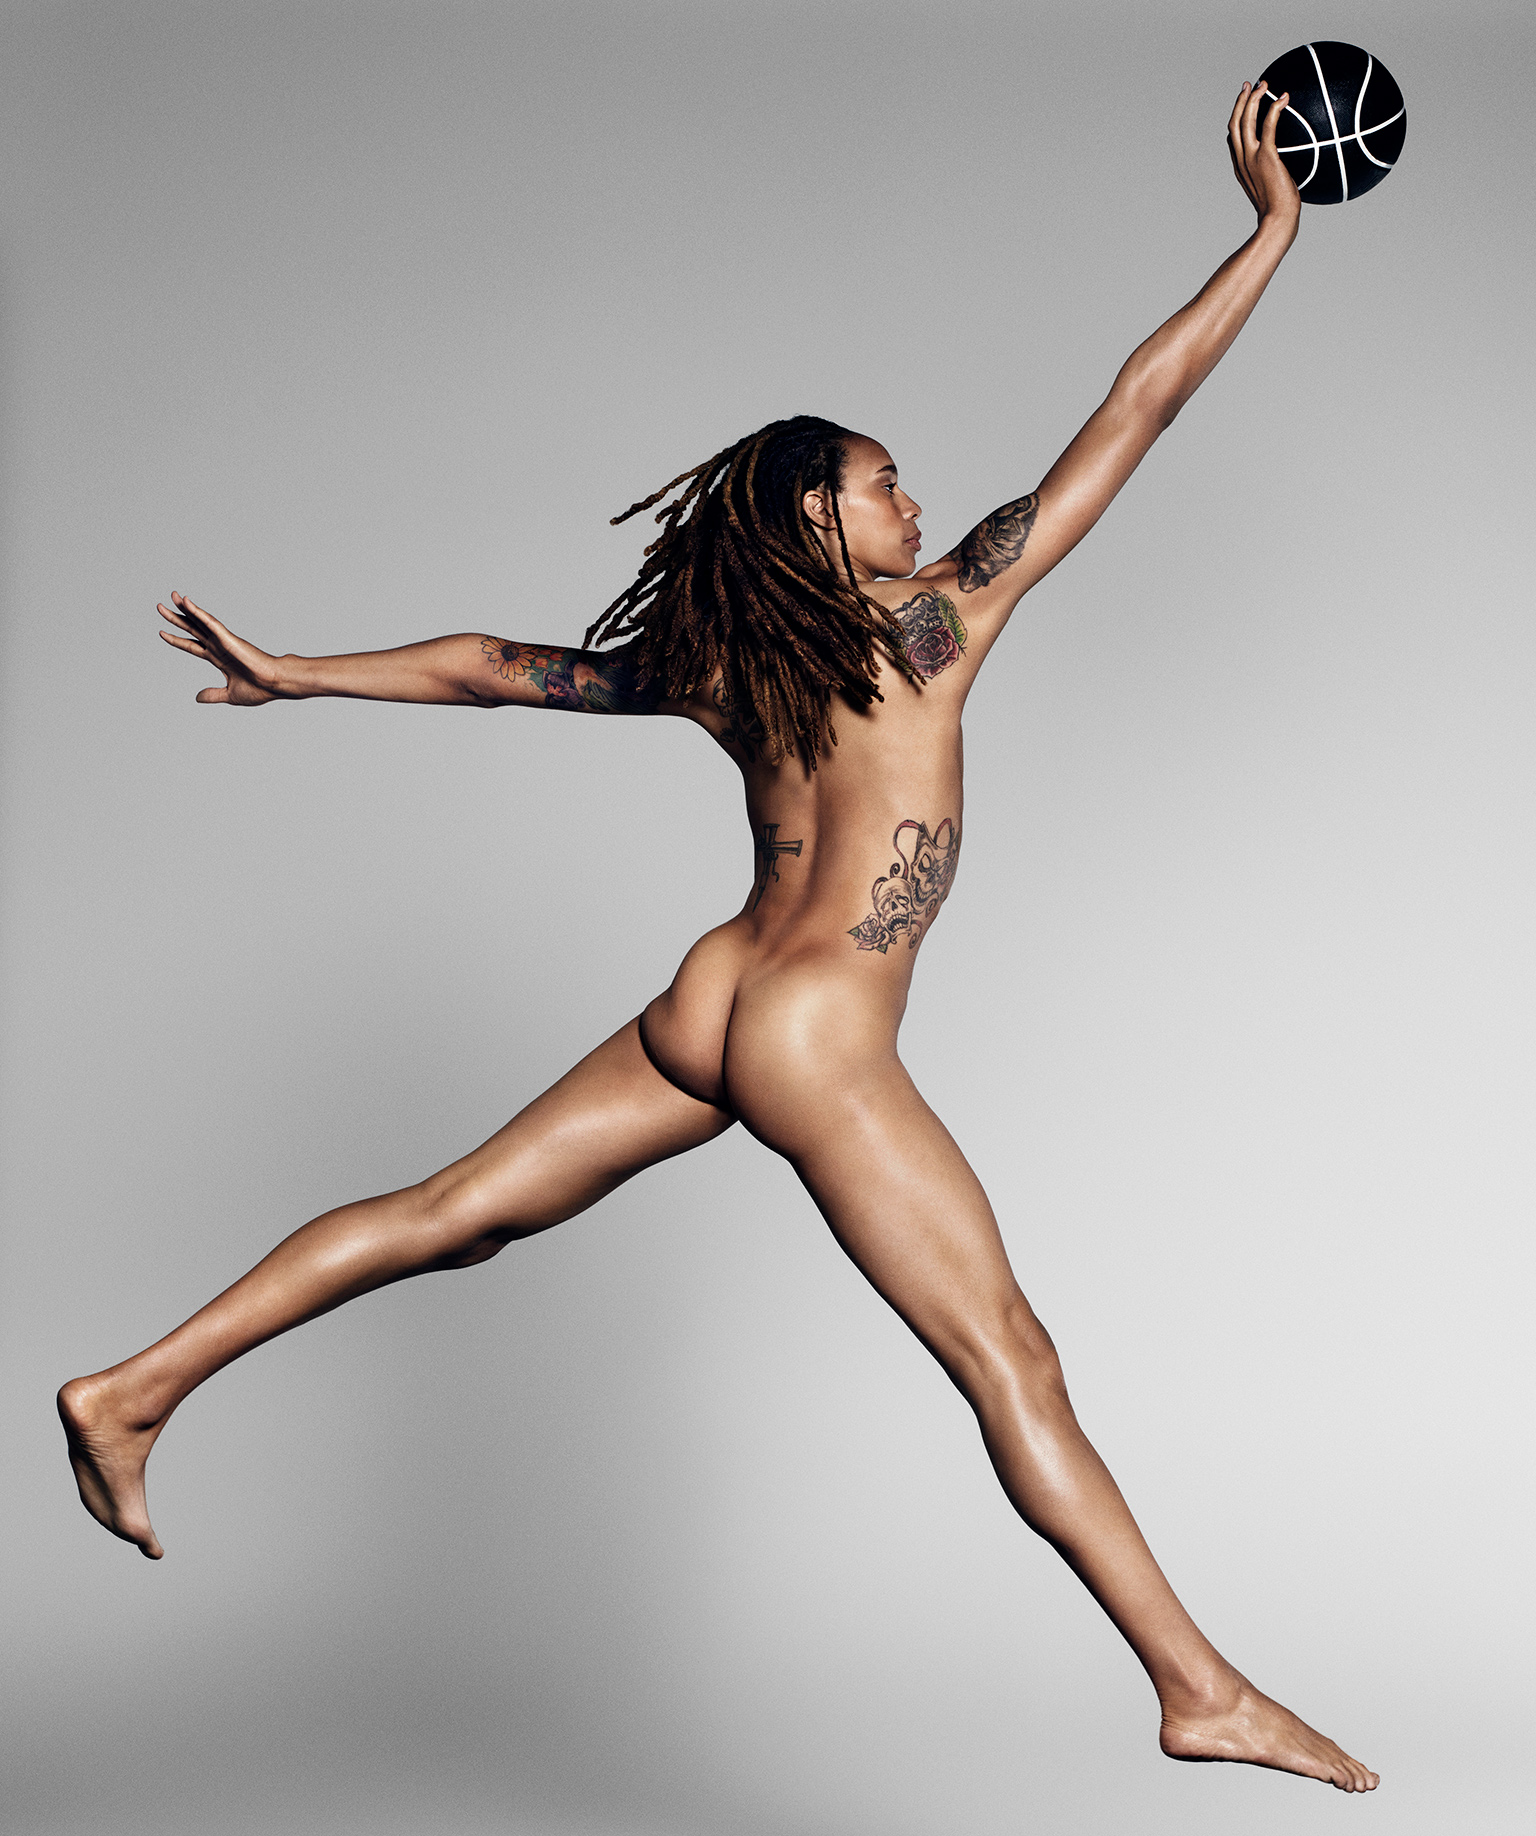 ESPN BODY ISSUE 2015 nudes (96 foto) Boobs, YouTube, braless